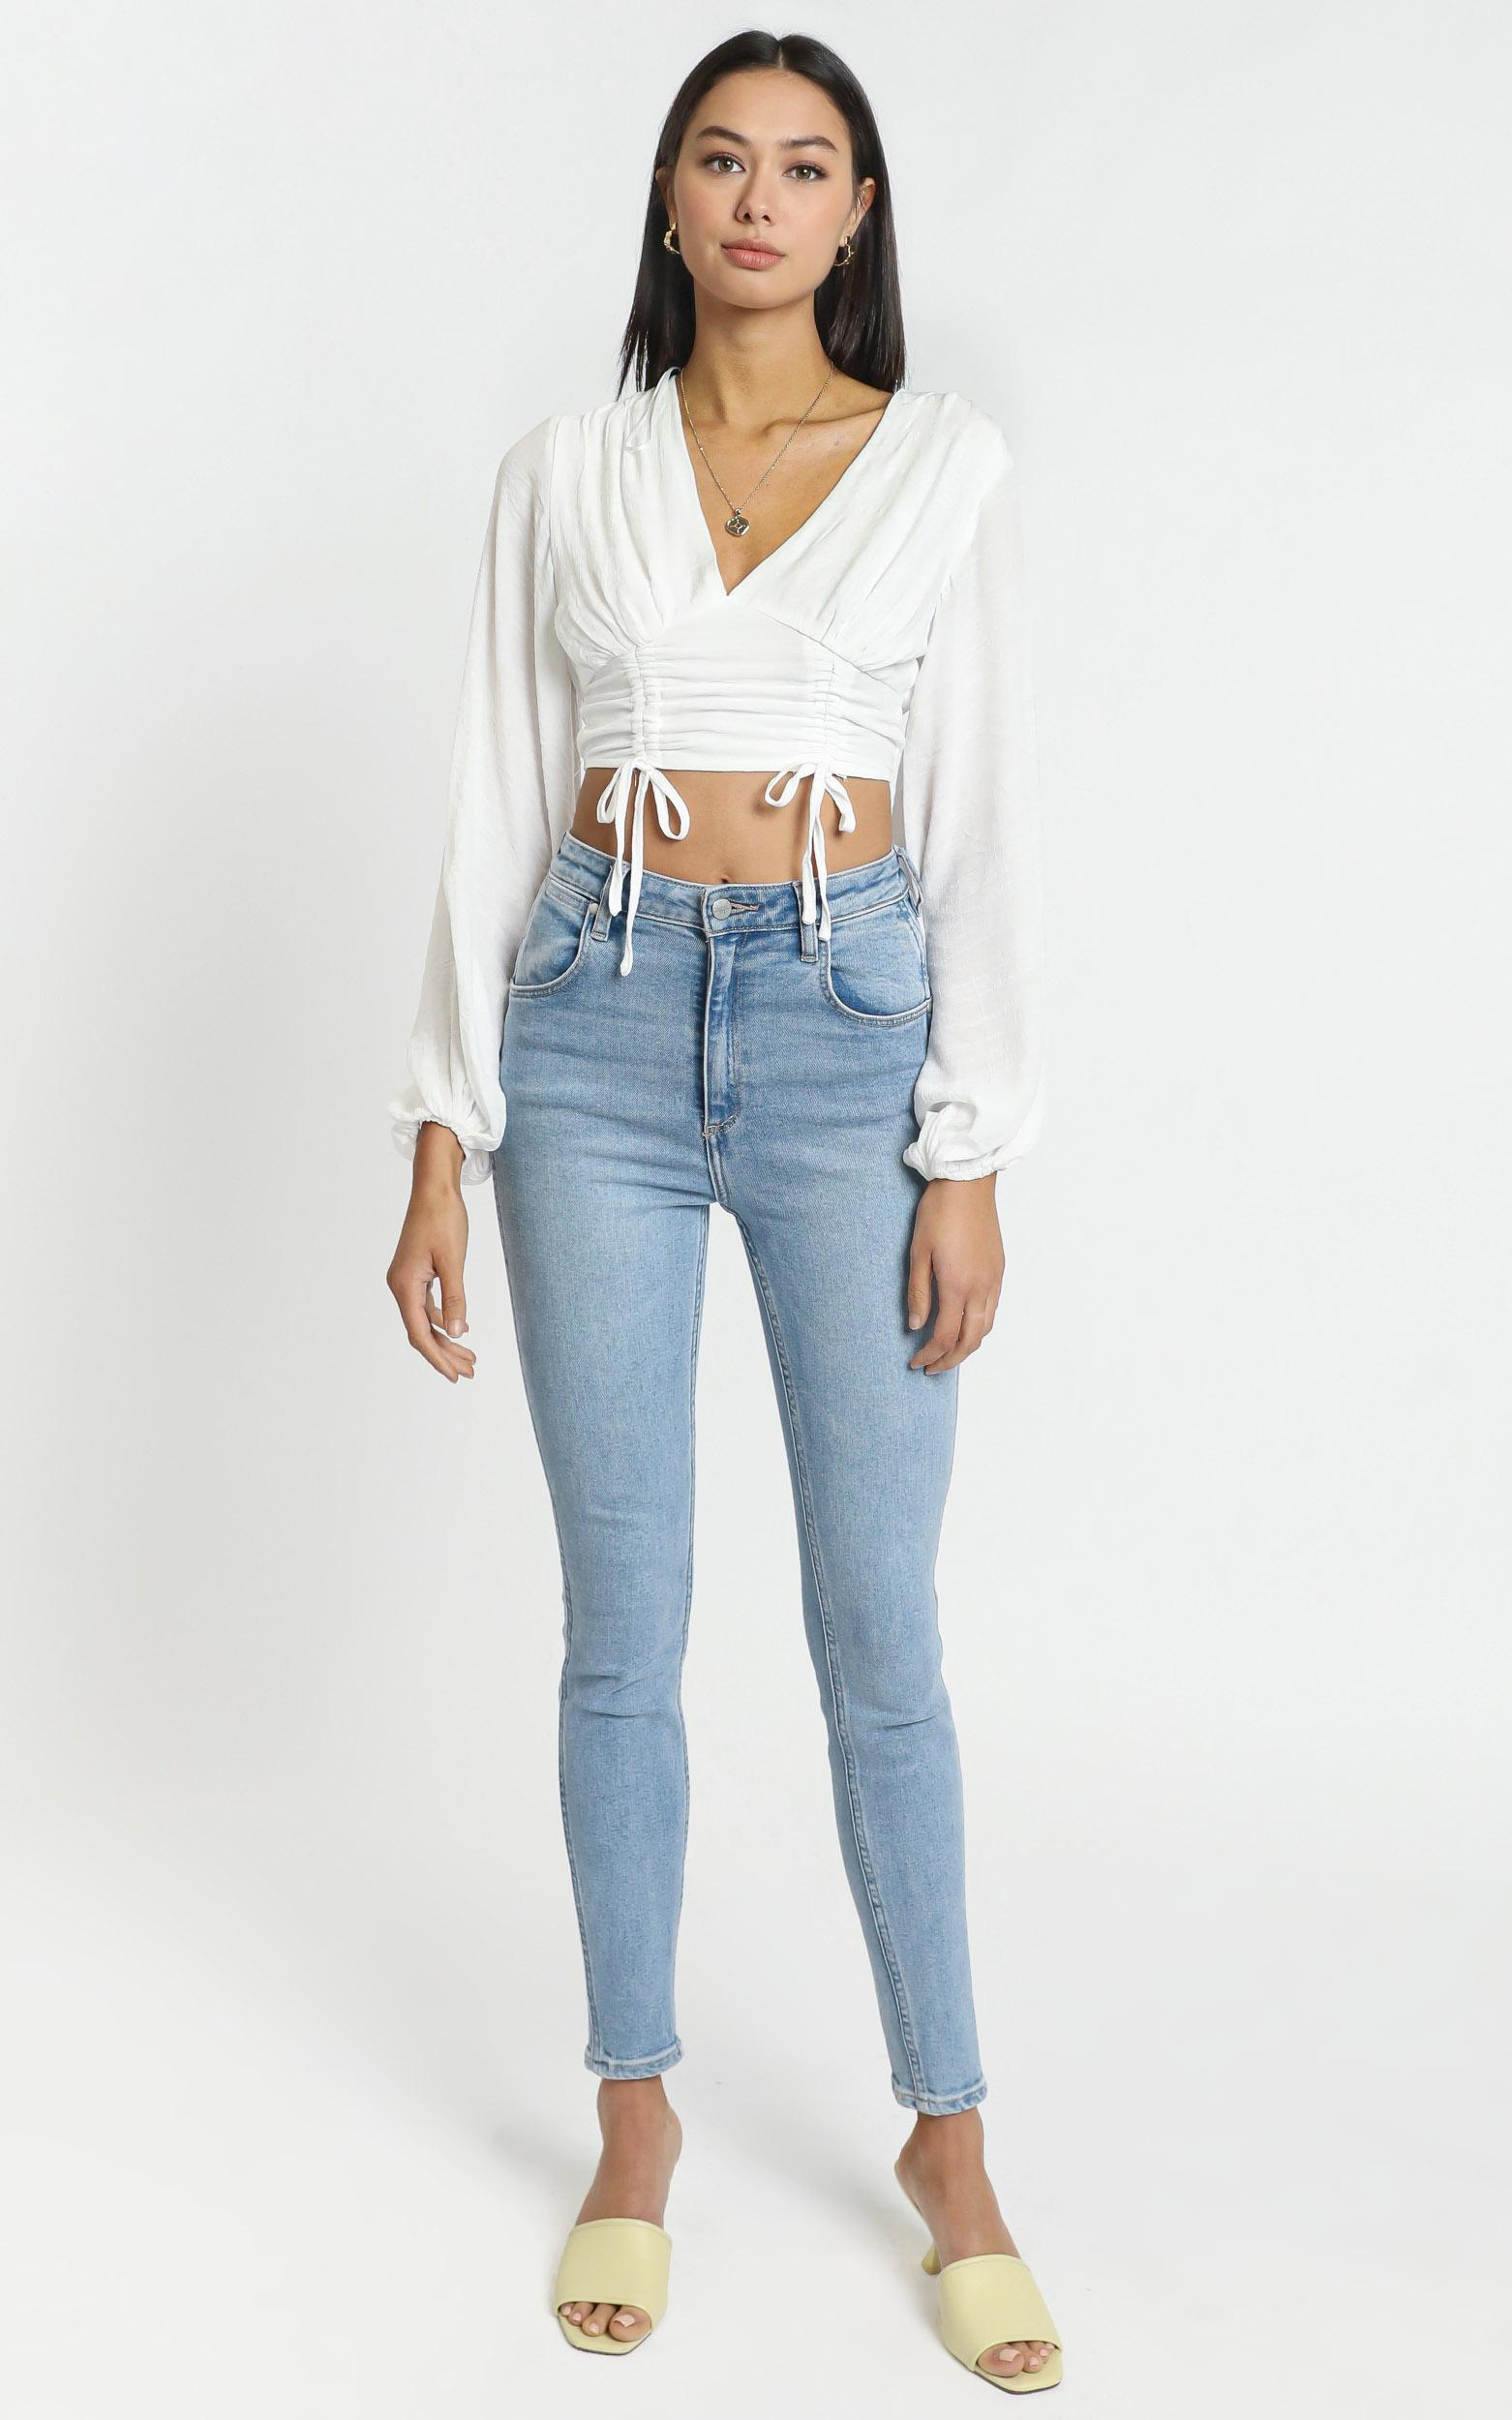 Juliet Top in White - 6 (XS), WHT1, hi-res image number null